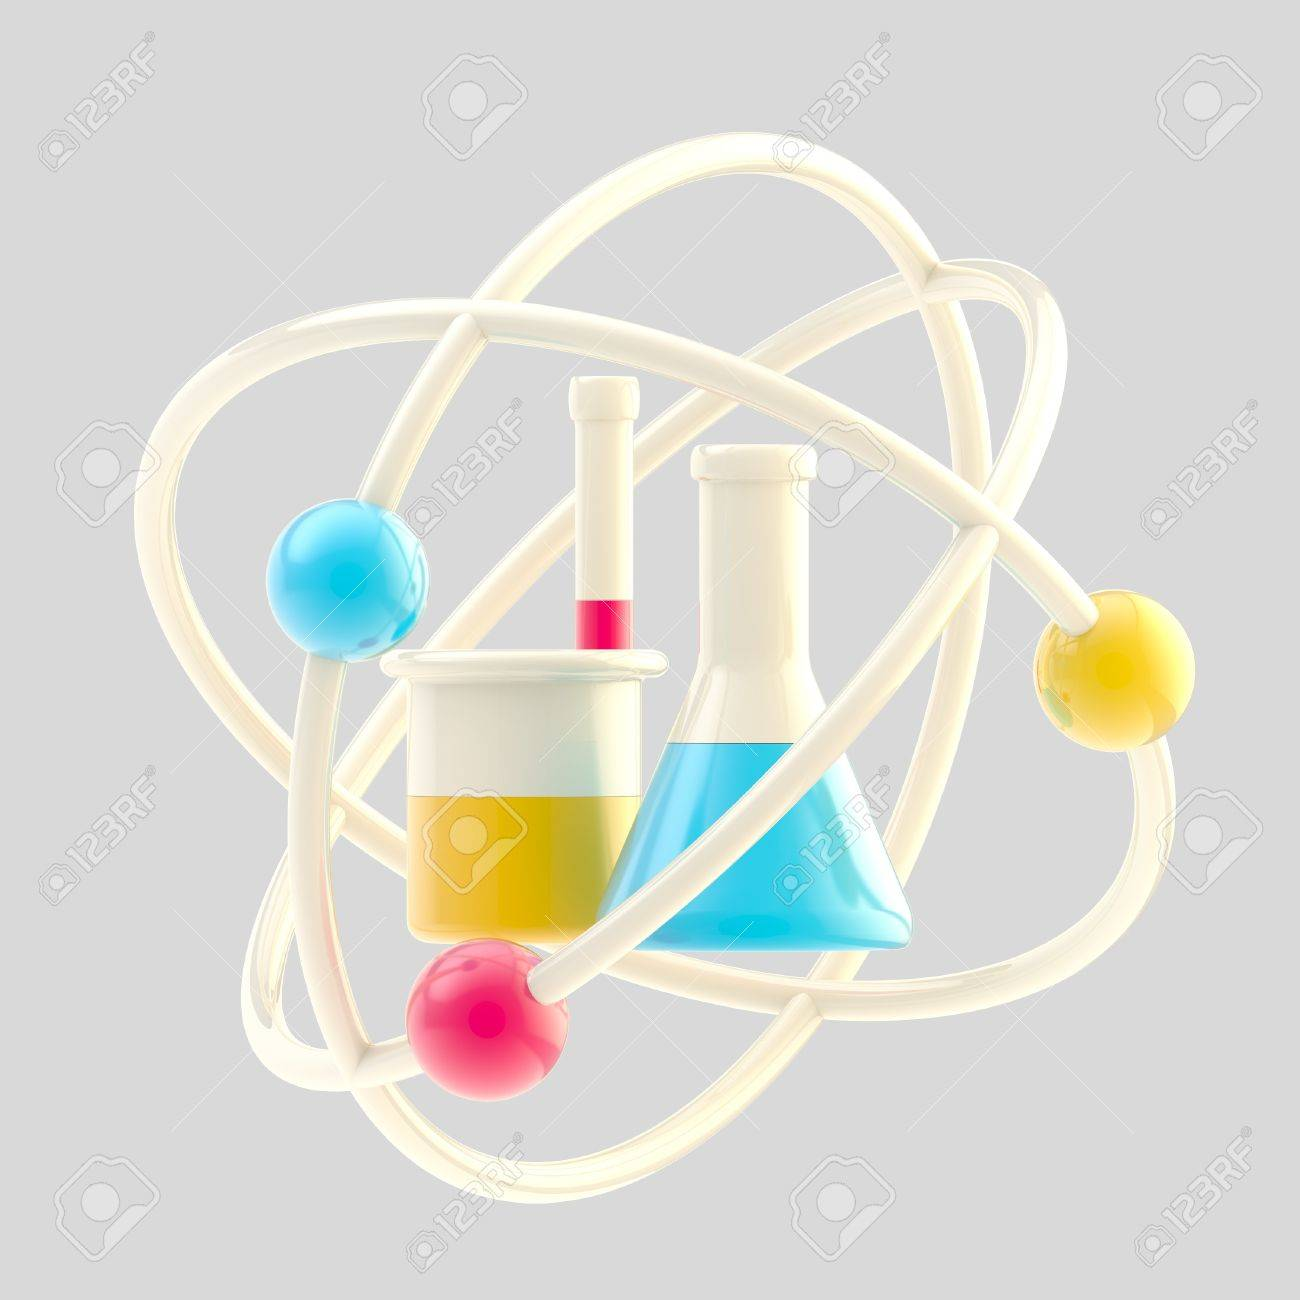 Science and research glossy icon isolated Stock Photo - 13279047